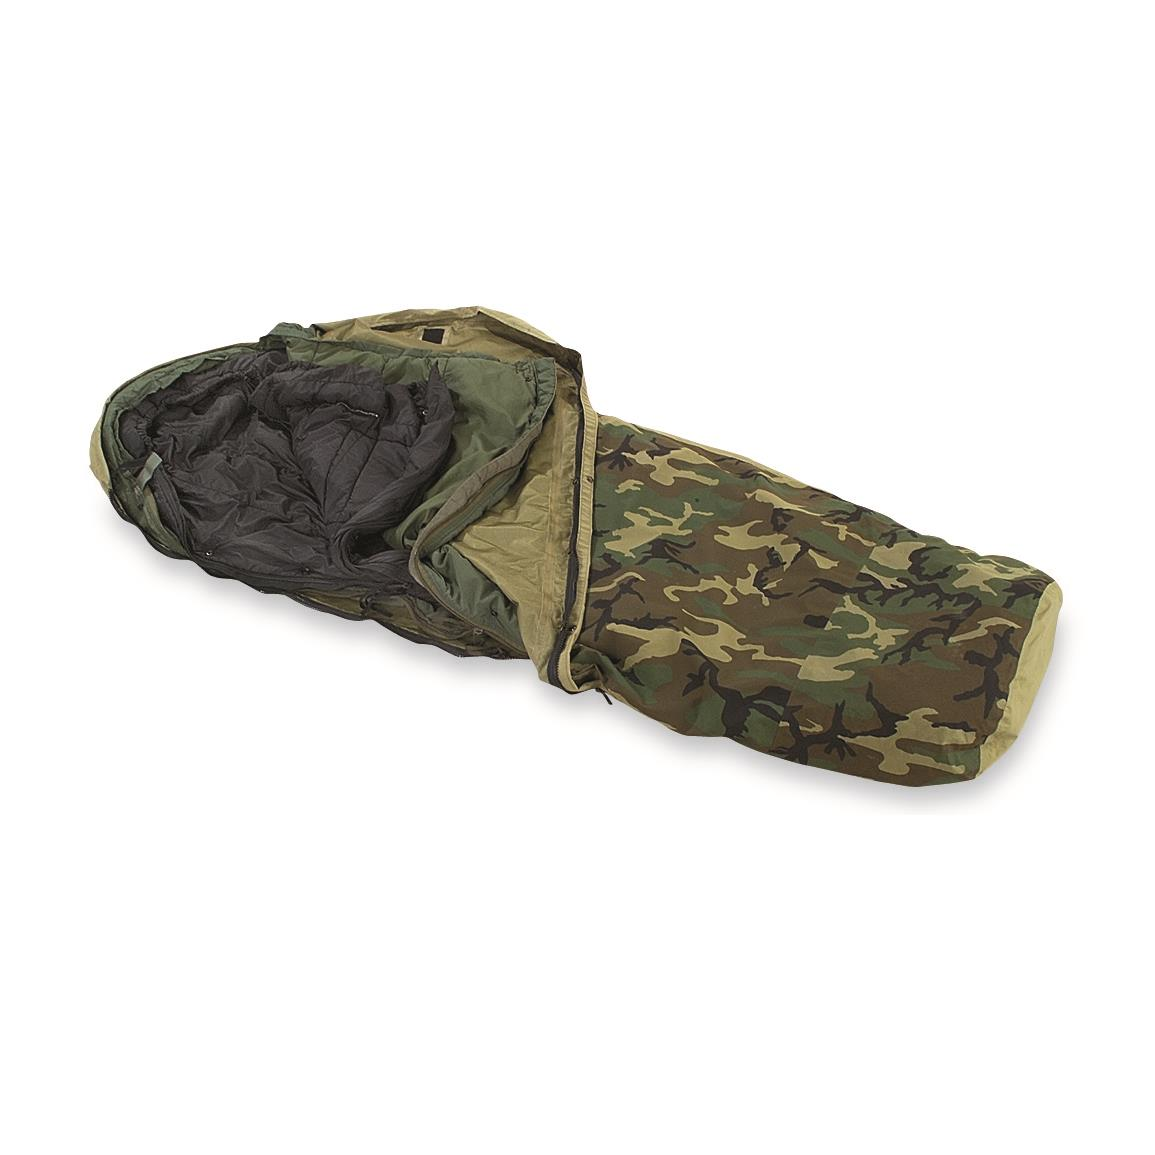 New U.S. Military 3-Pc. ECWS Sleeping Bag System